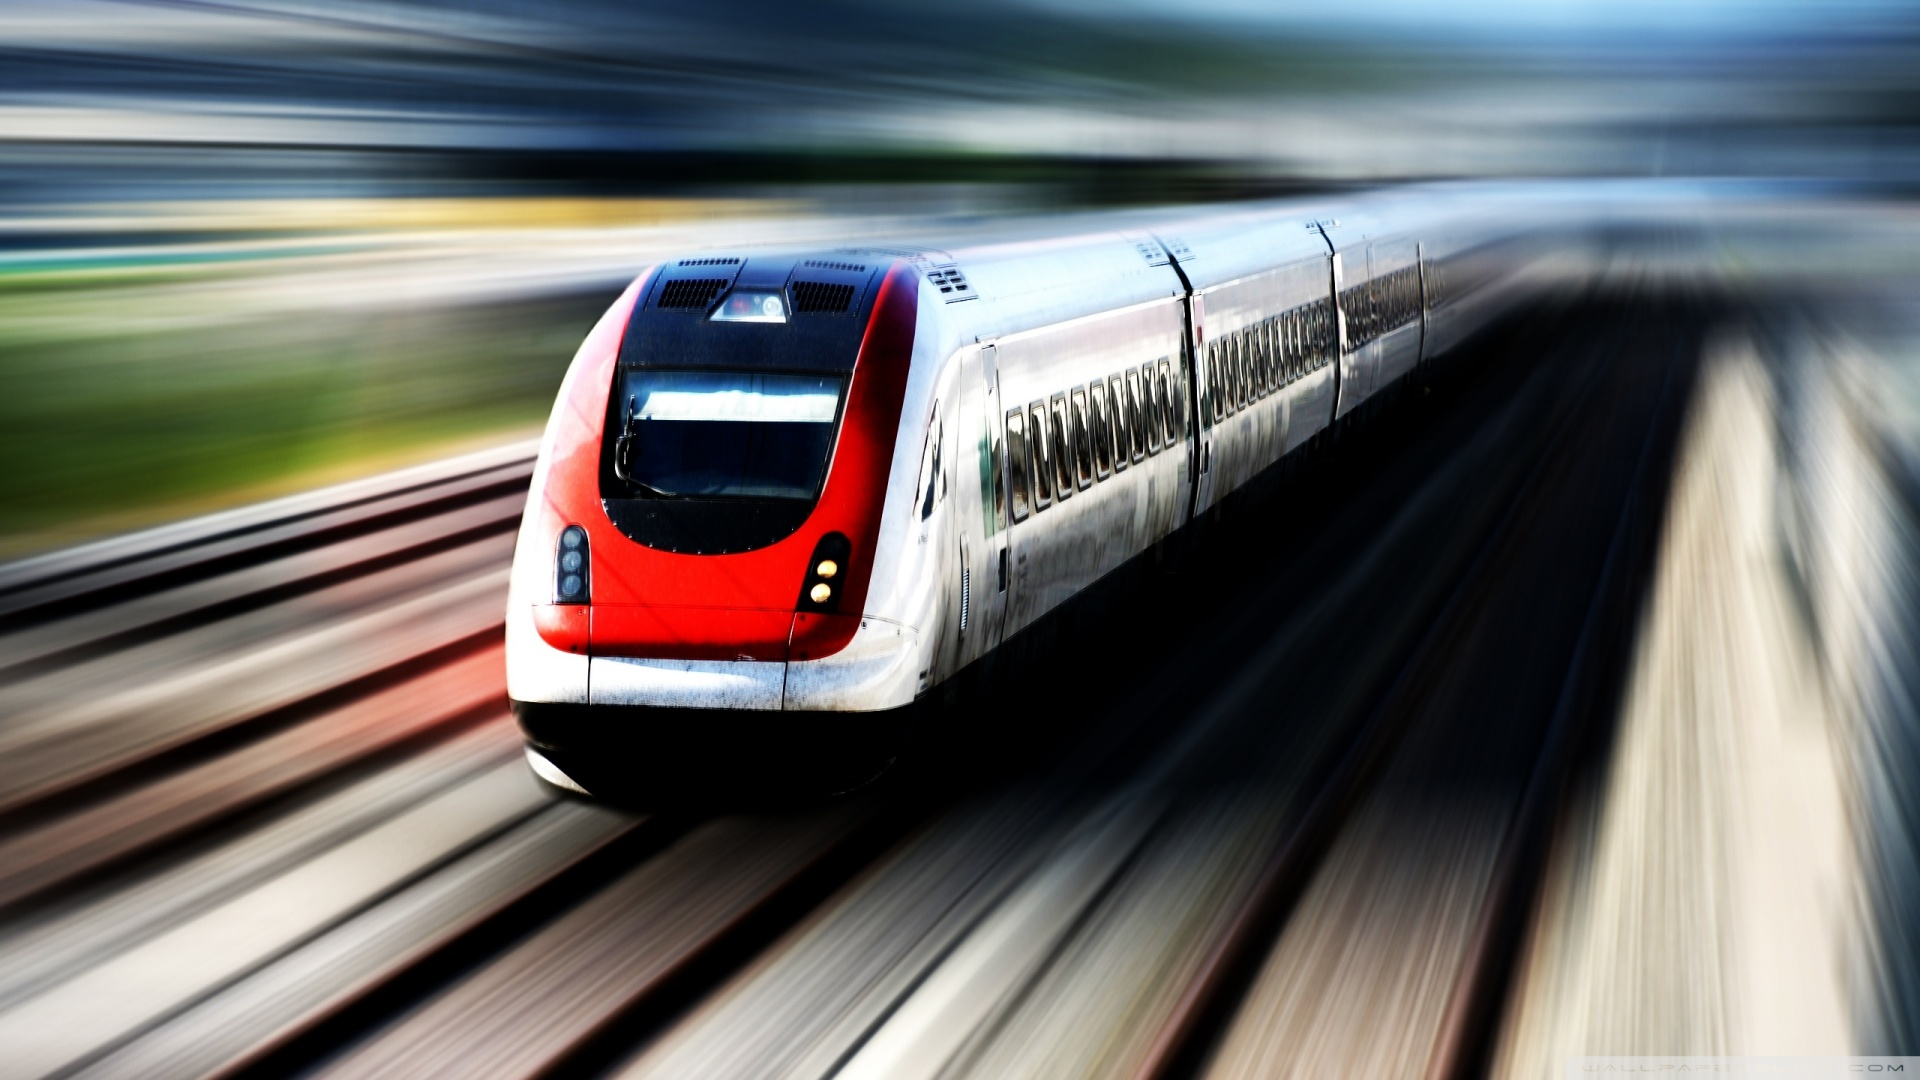 7001092-bullet-train-wallpaper-21942